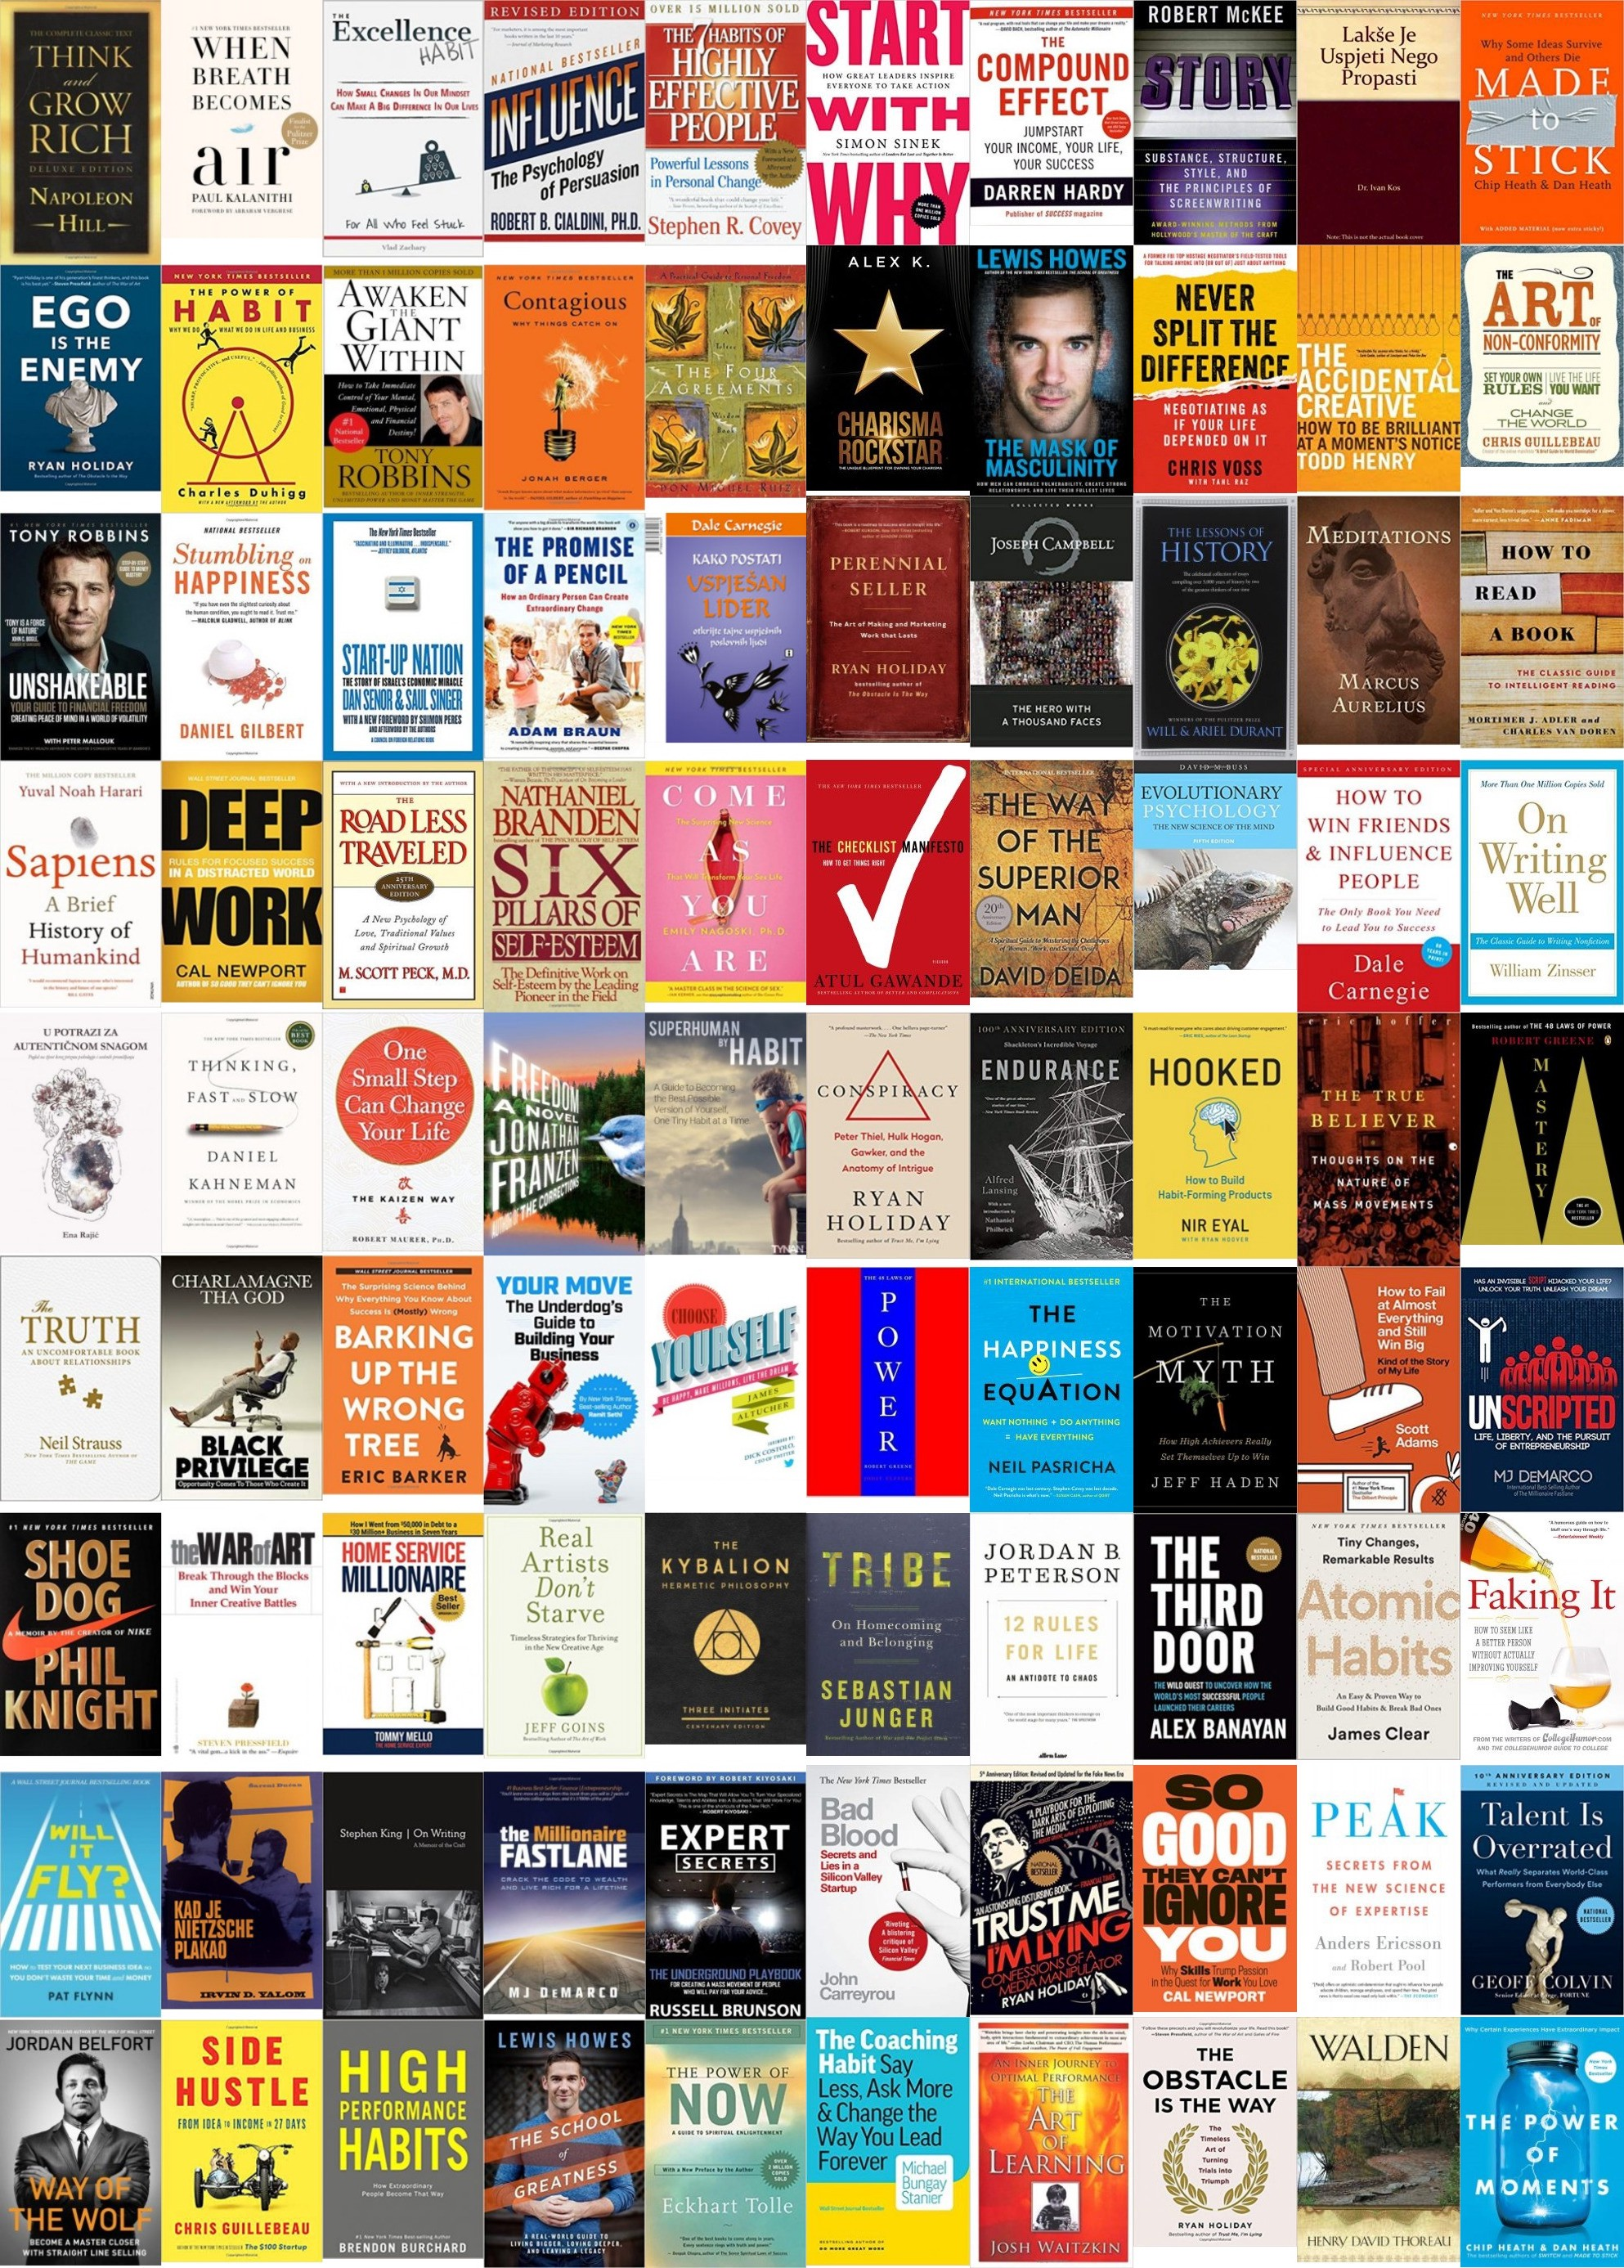 How I Read 90 Books In The Past 2 Years By Reading 20 Pages